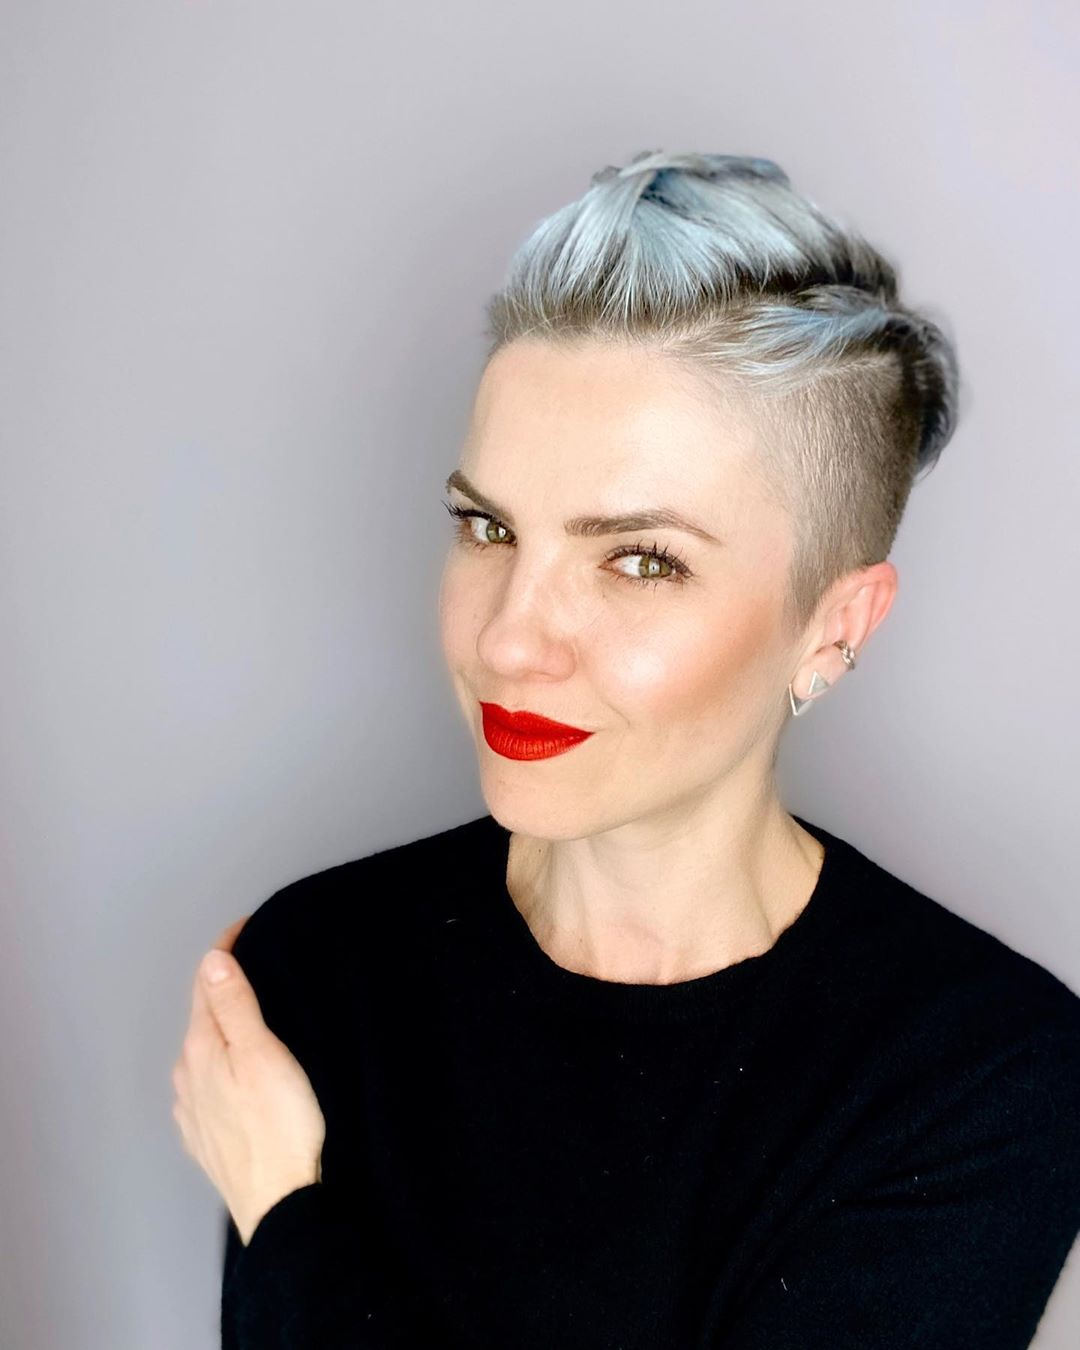 Best Pixie Bob Haircuts to Build Your Own in 2020 32